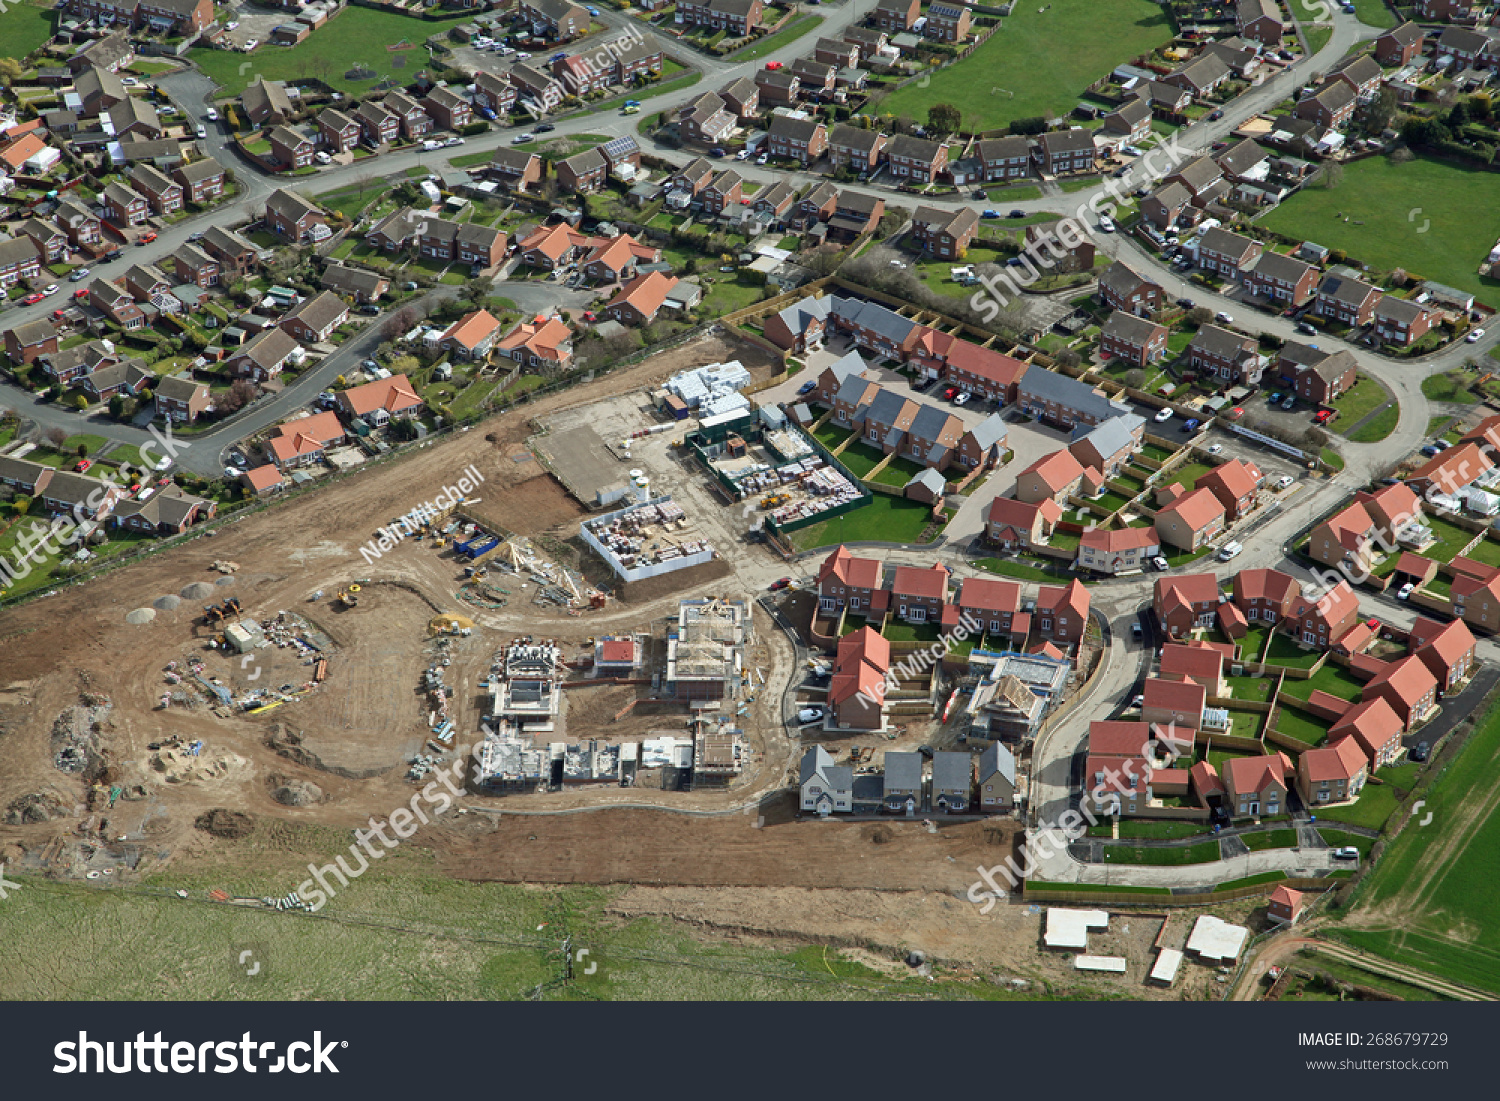 Aerial View Of A New Housing Development Being Built In